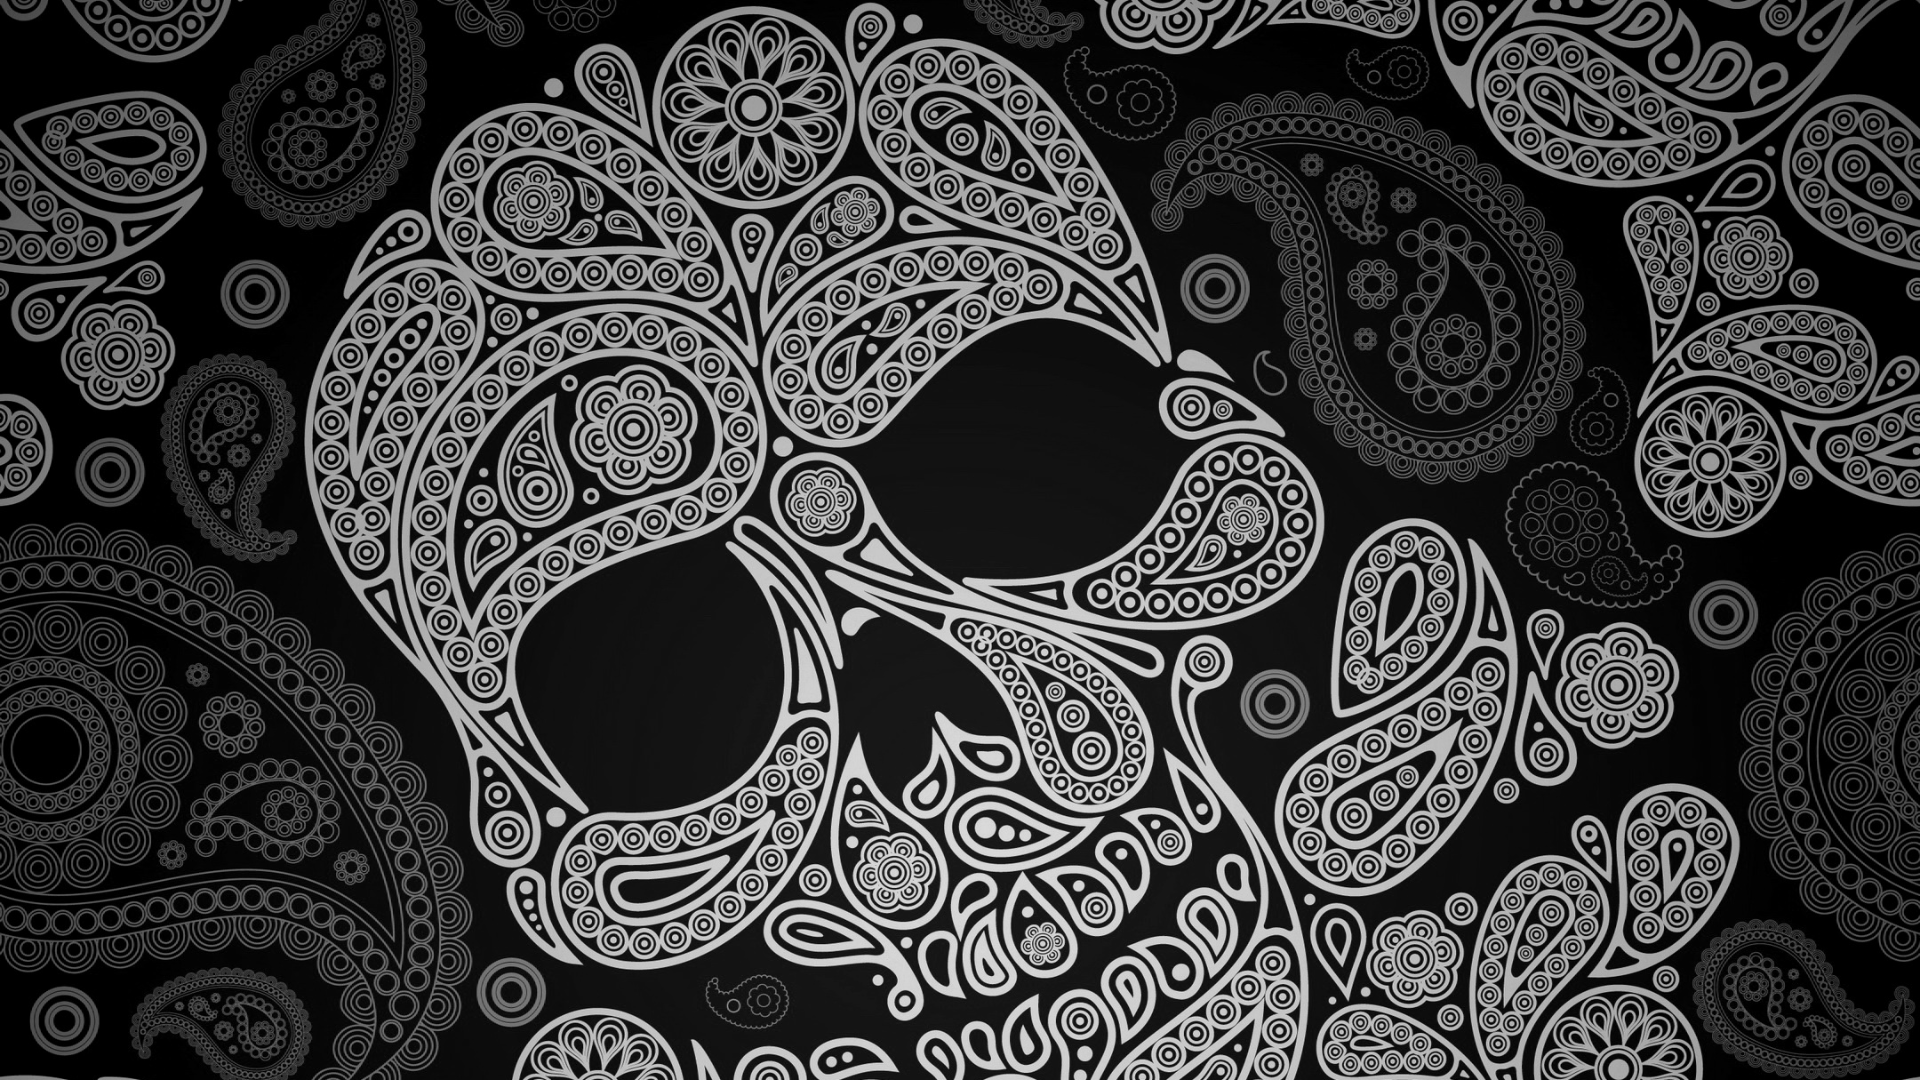 Paisley Skull Nexus 5 Wallpaper 1920x1080 1920x1080